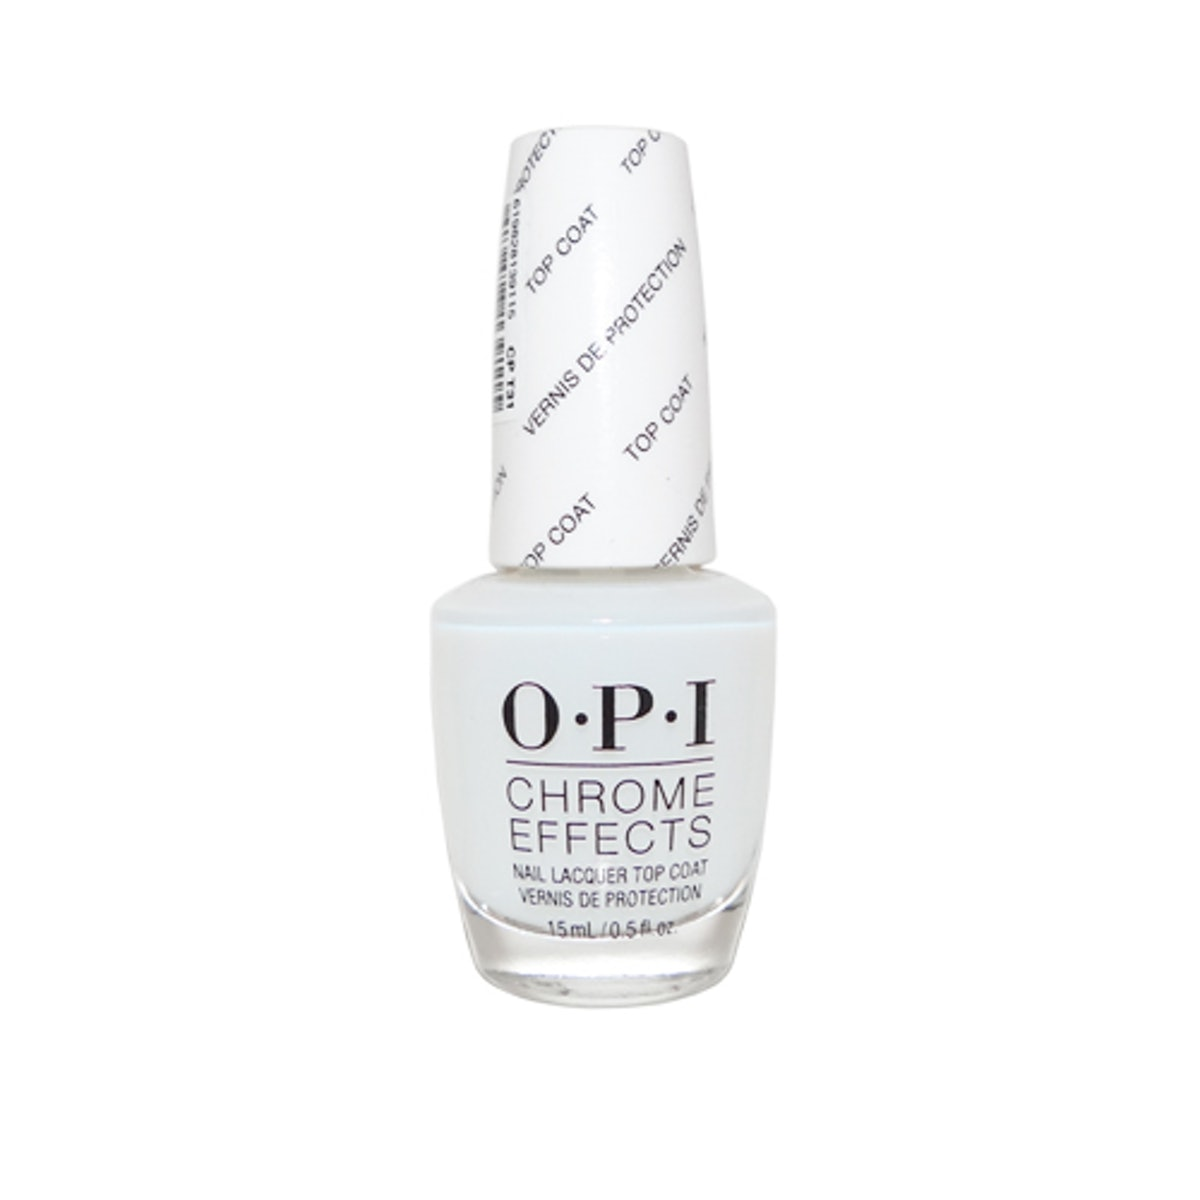 """OPI Chrome Effects Nail Lacquer in """"Top Coat #CPT31"""""""